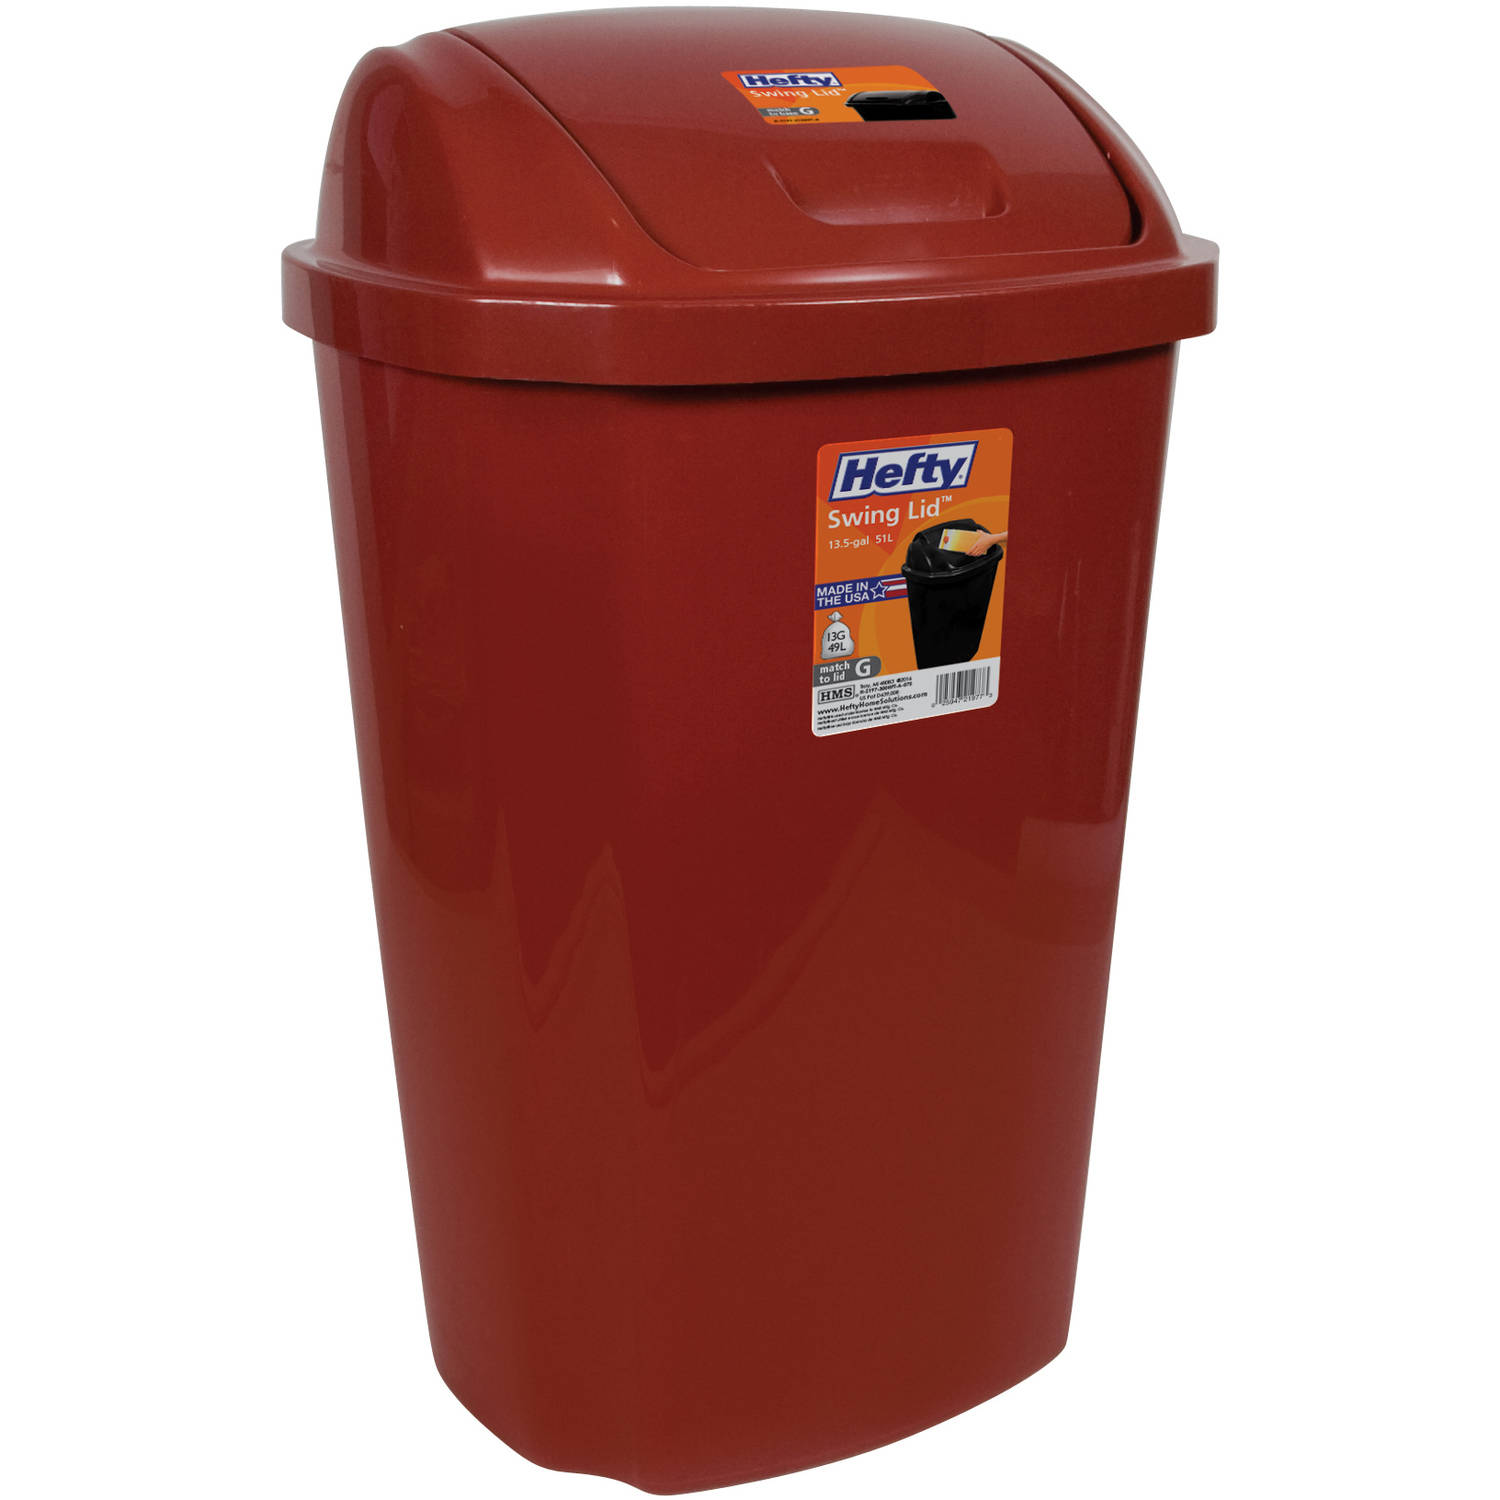 Hefty Swing-Lid 13.5-Gallon Trash Can, Multiple Colors